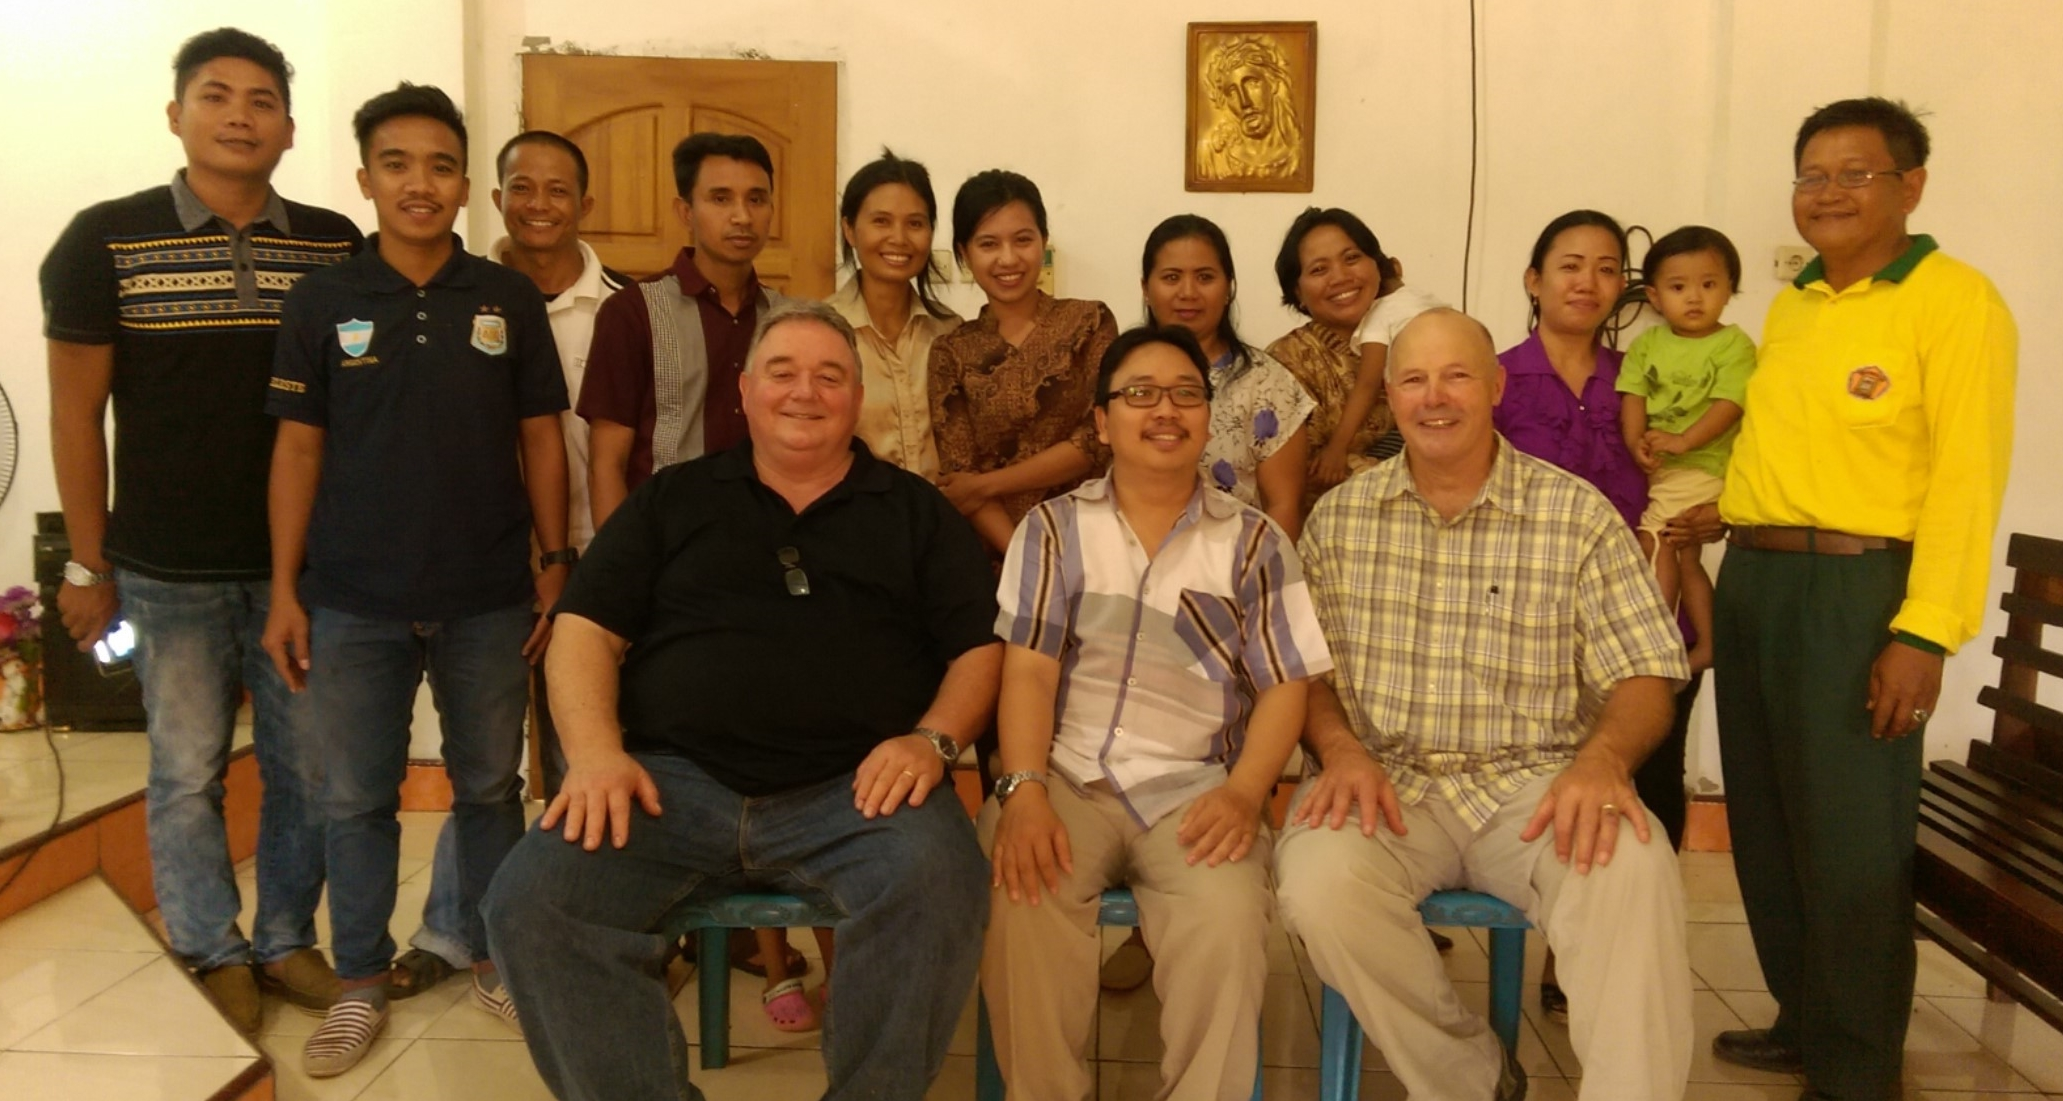 Vineyard Institute Indonesia students after a class on the Kingdom of God, pictured with Keith Henderson, Yusak Tanasyah, and Roy Conwell (in front).